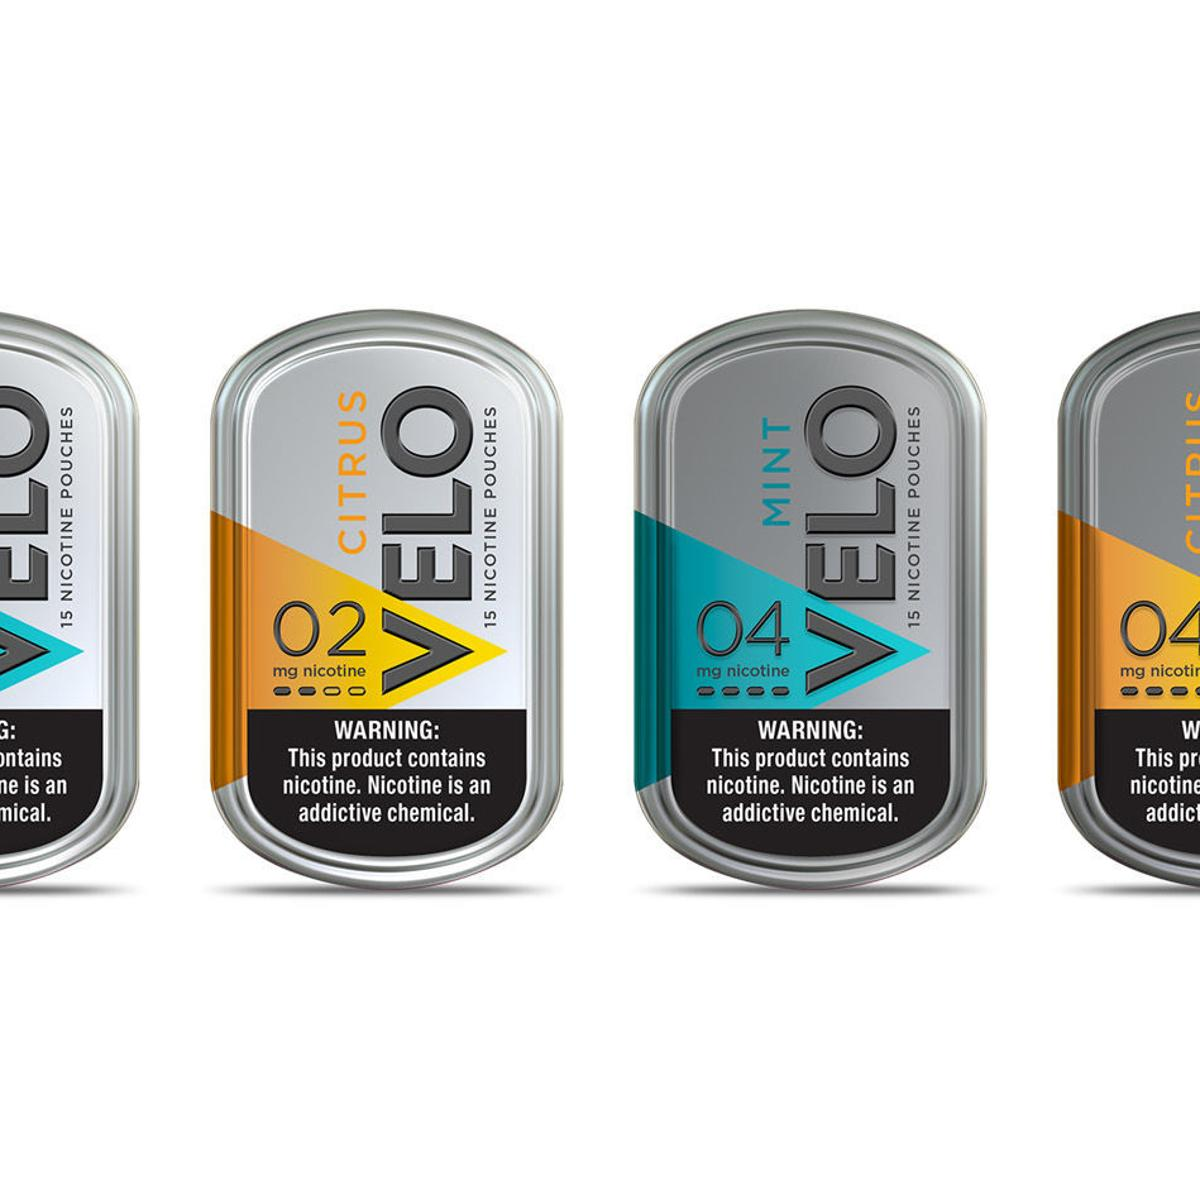 Reynolds unveils snus-like product with no tobacco leaves